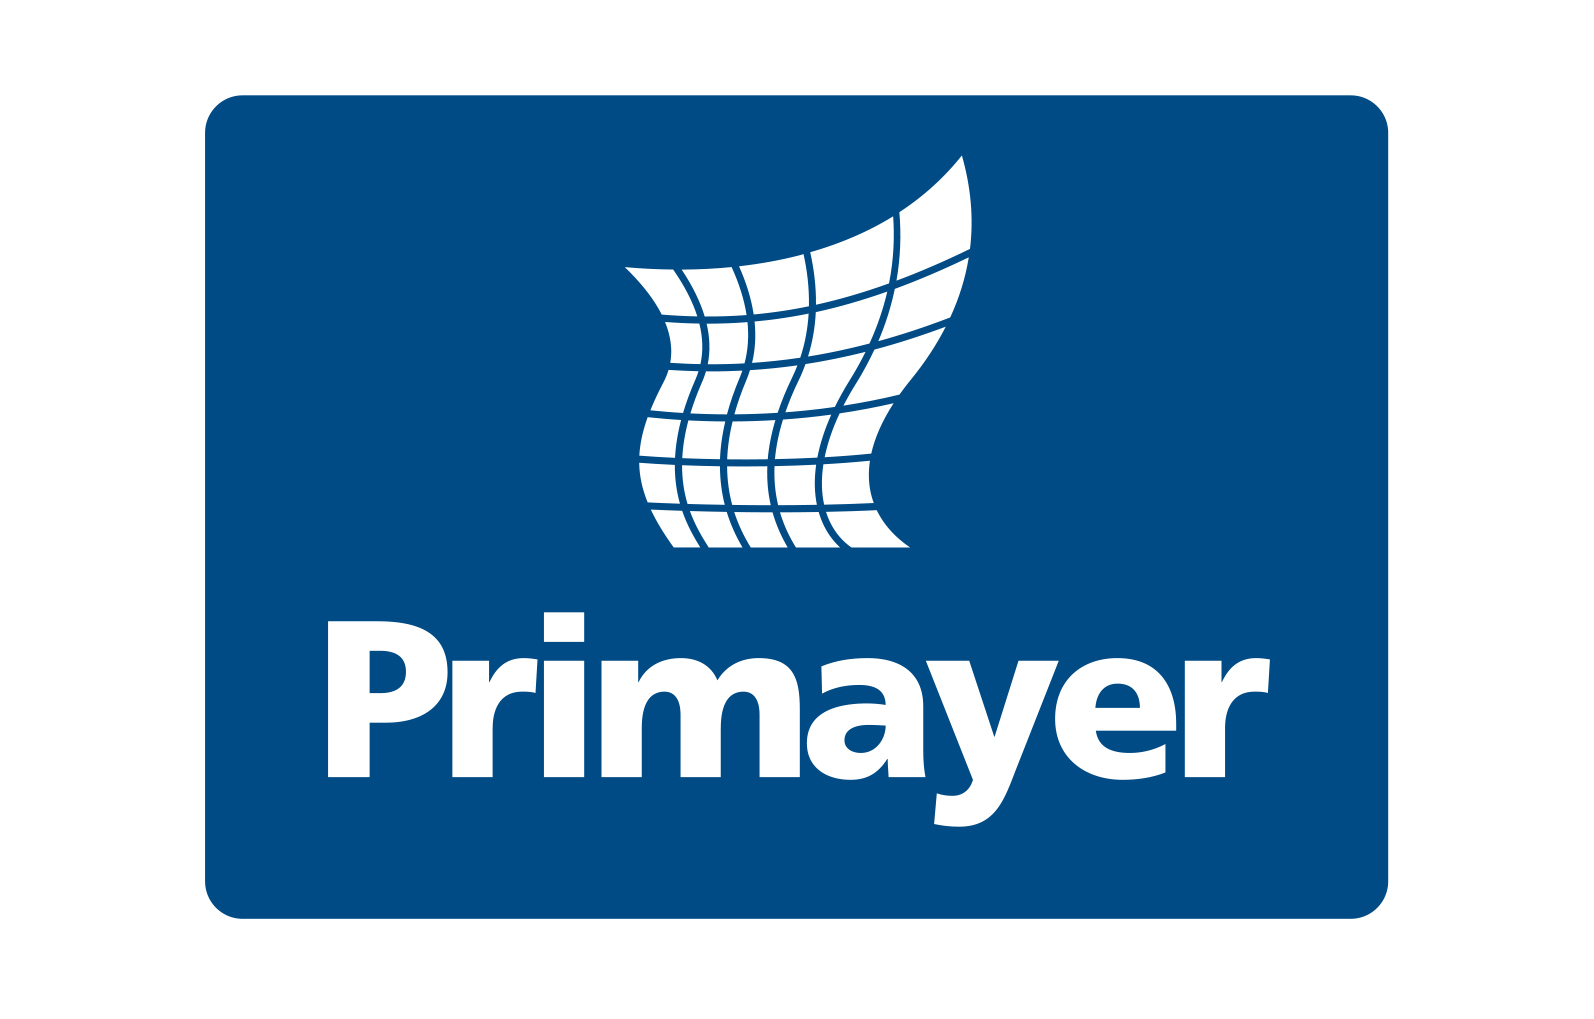 Primayer Logotype 8